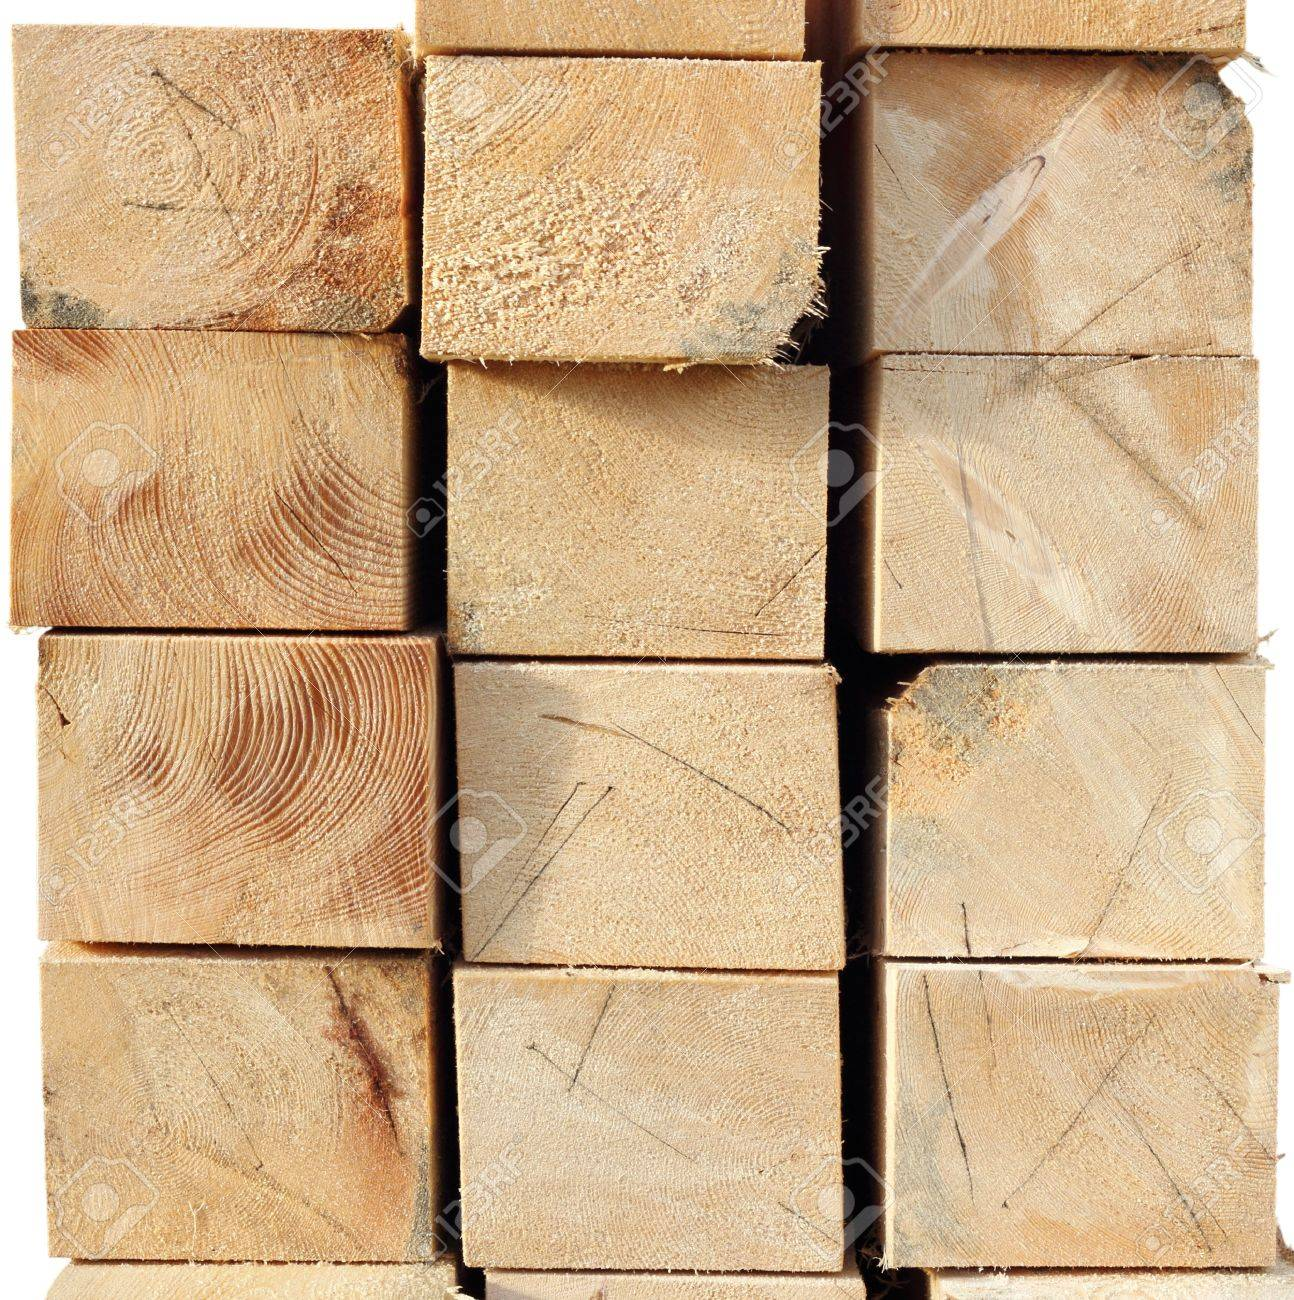 arrangement of wooden beams - felled spruce wood texture Stock Photo - 16752899